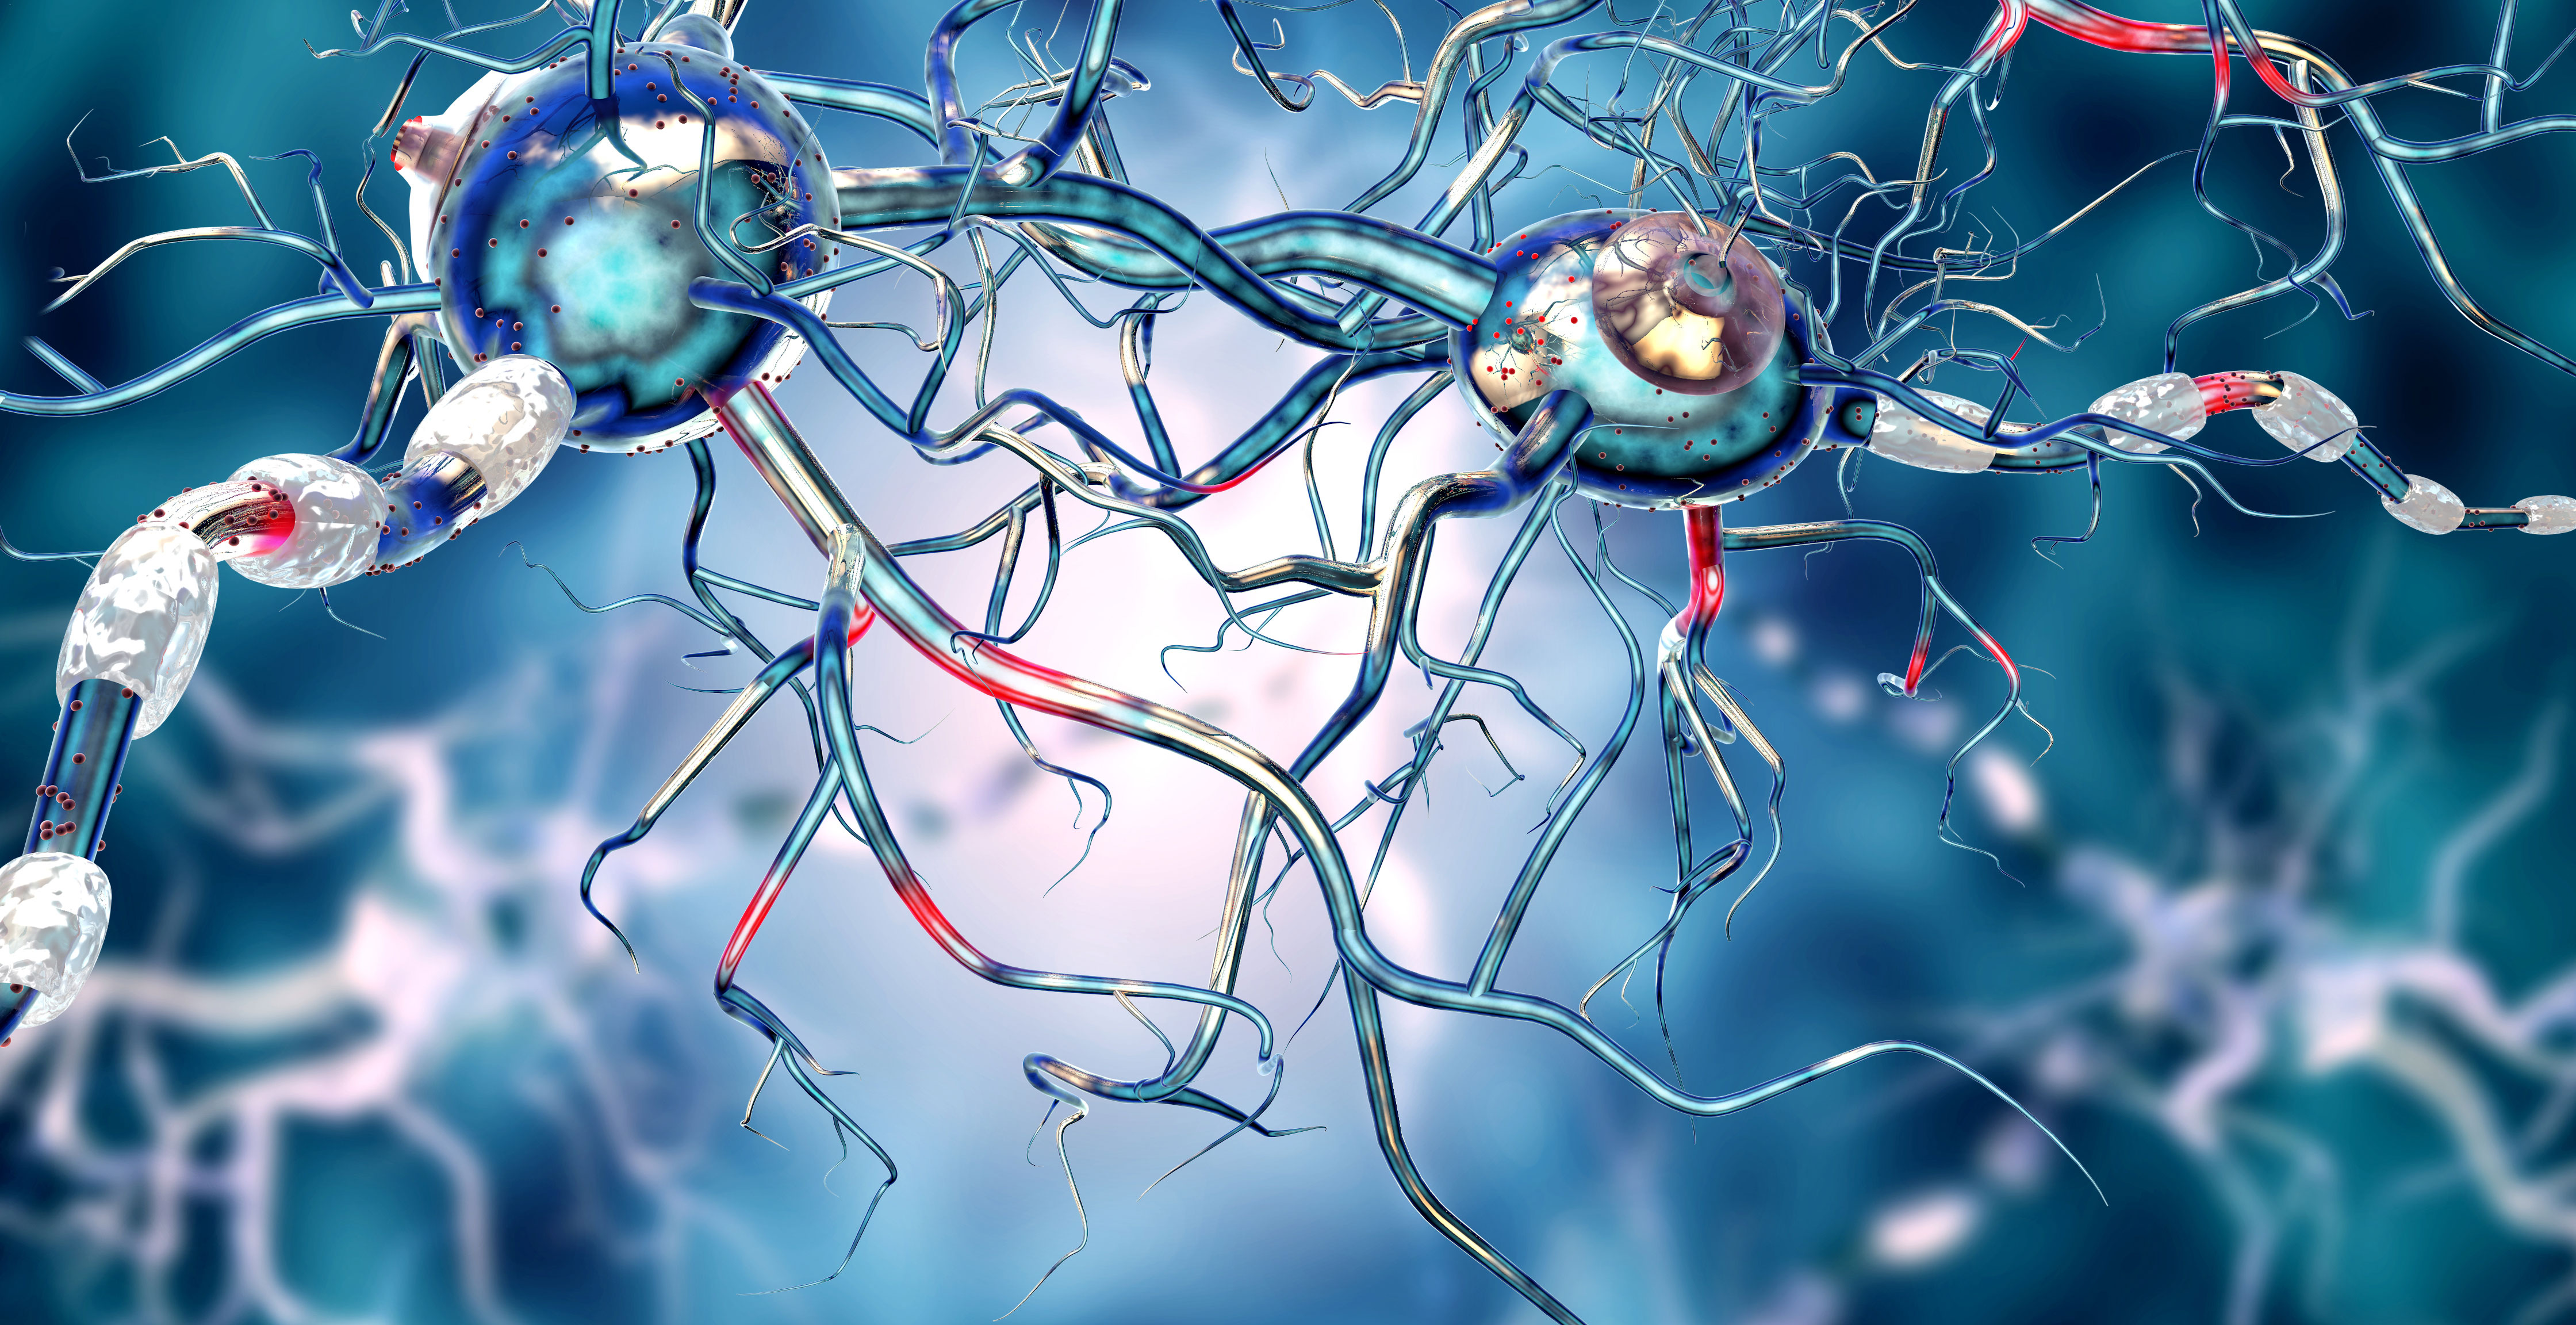 New insight into Huntington's disease may open door to drug development